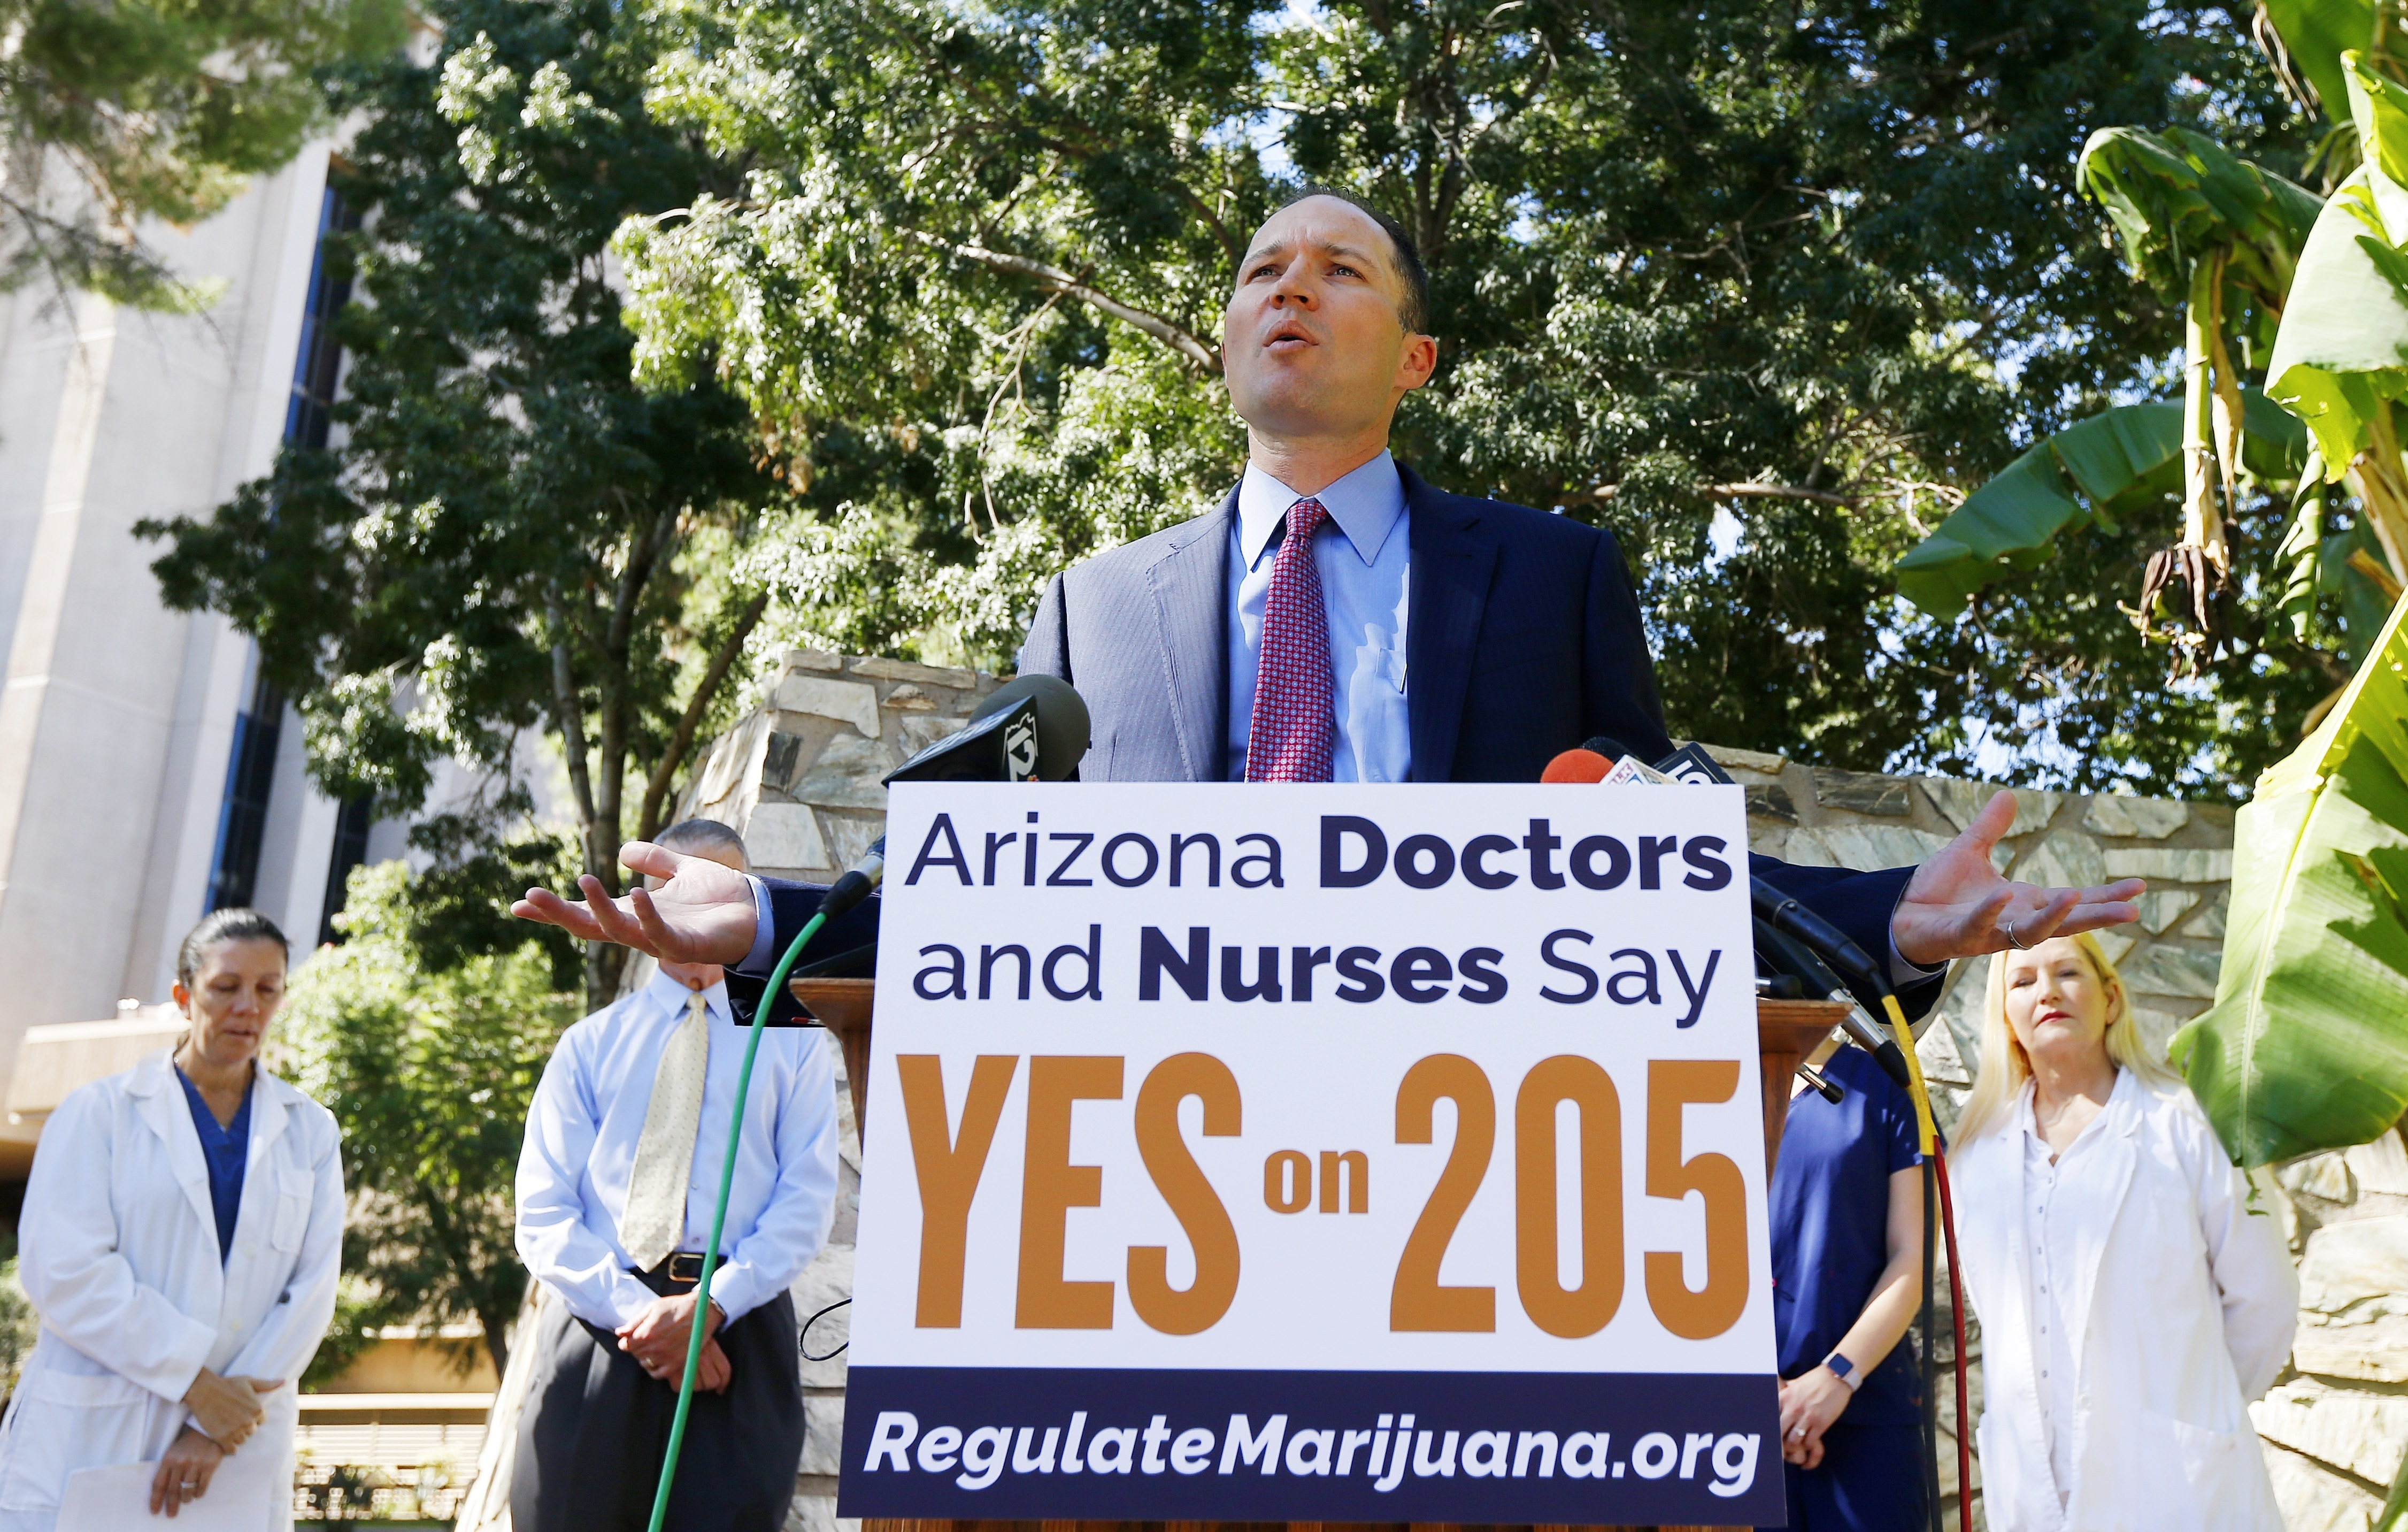 J.P. Holyoak, chair of the Campaign to Regulate Marijuana Like Alcohol, speaks at a news conference as he is joined by a host of doctors and nurses gather at the Arizona capitol to endorse Prop 205, the legalization of recreational marijuana, Wednesday, Oct. 26, 2016, in Phoenix. (AP Photo/Ross D. Franklin)